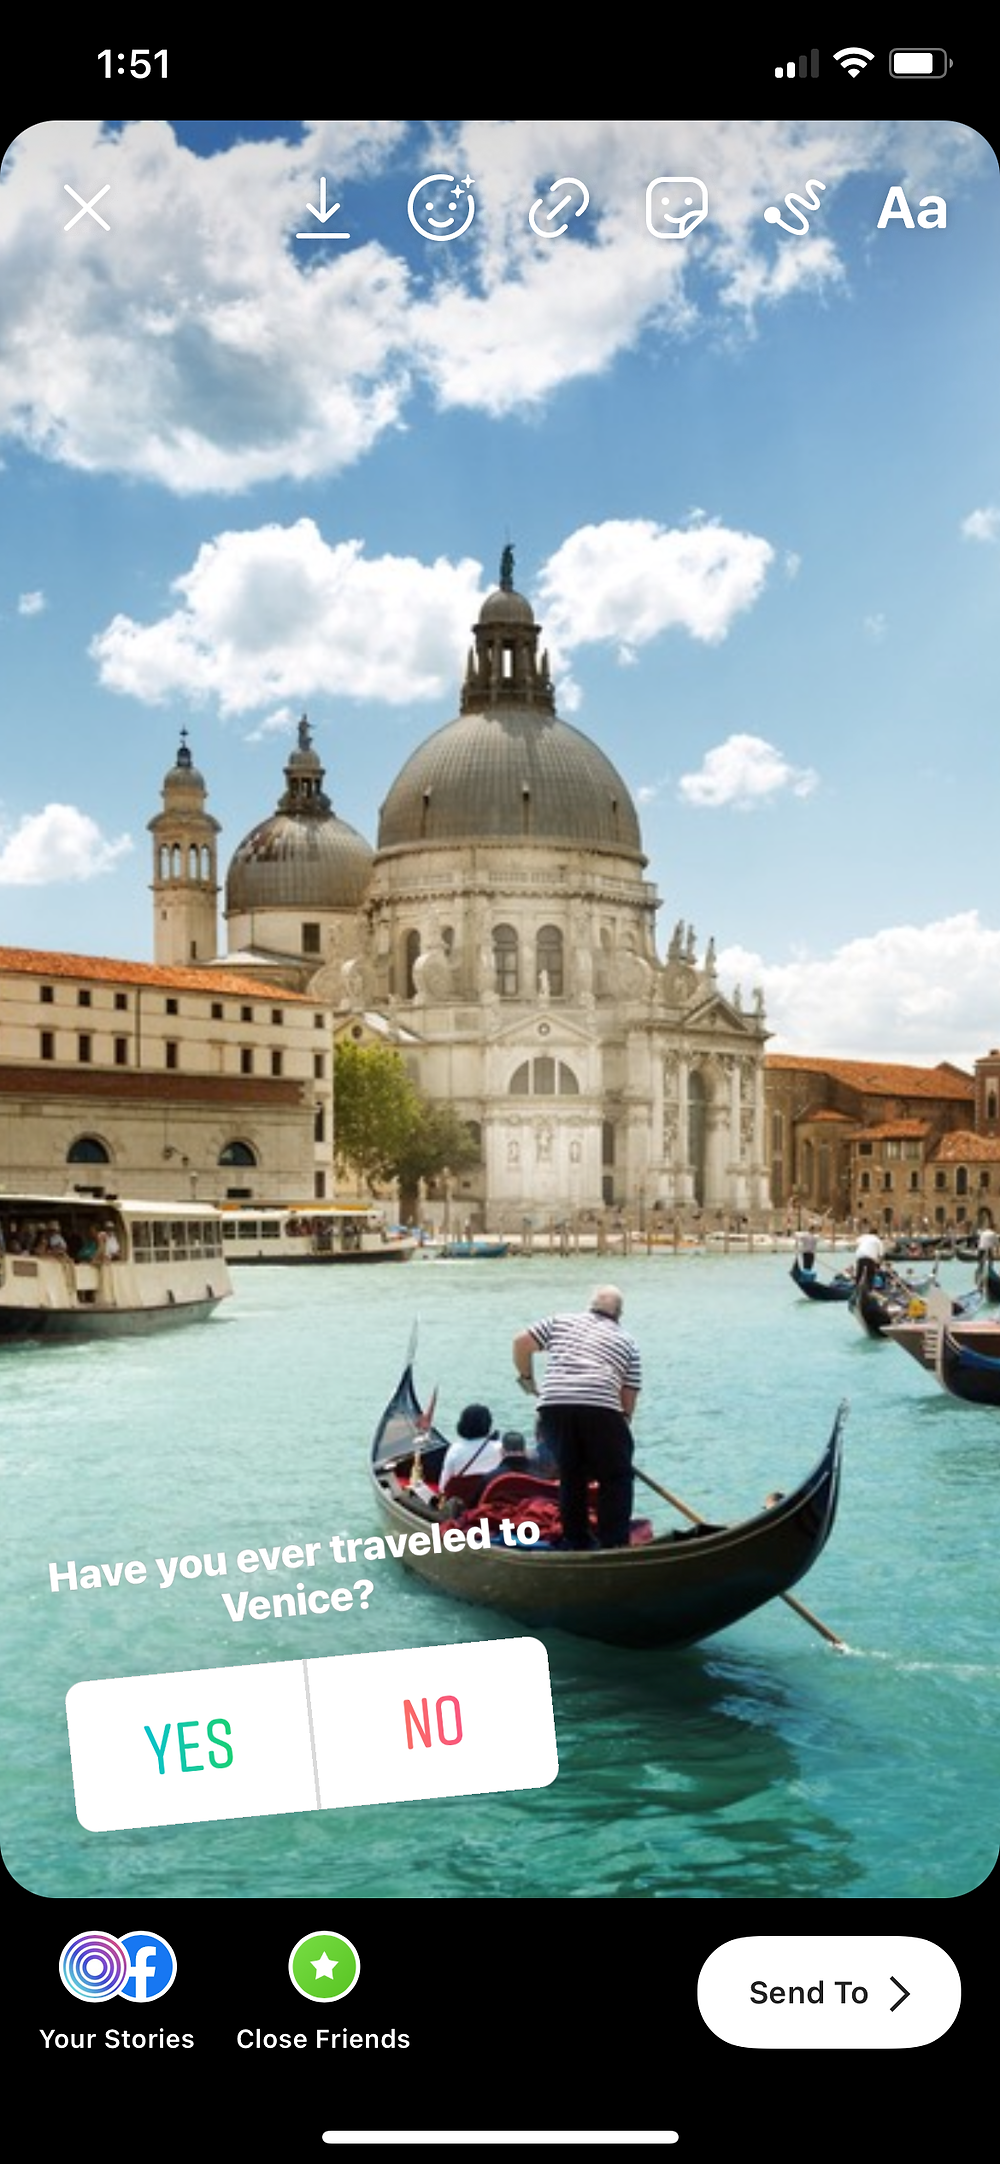 Example of a yes or no Instagram story poll with Venice